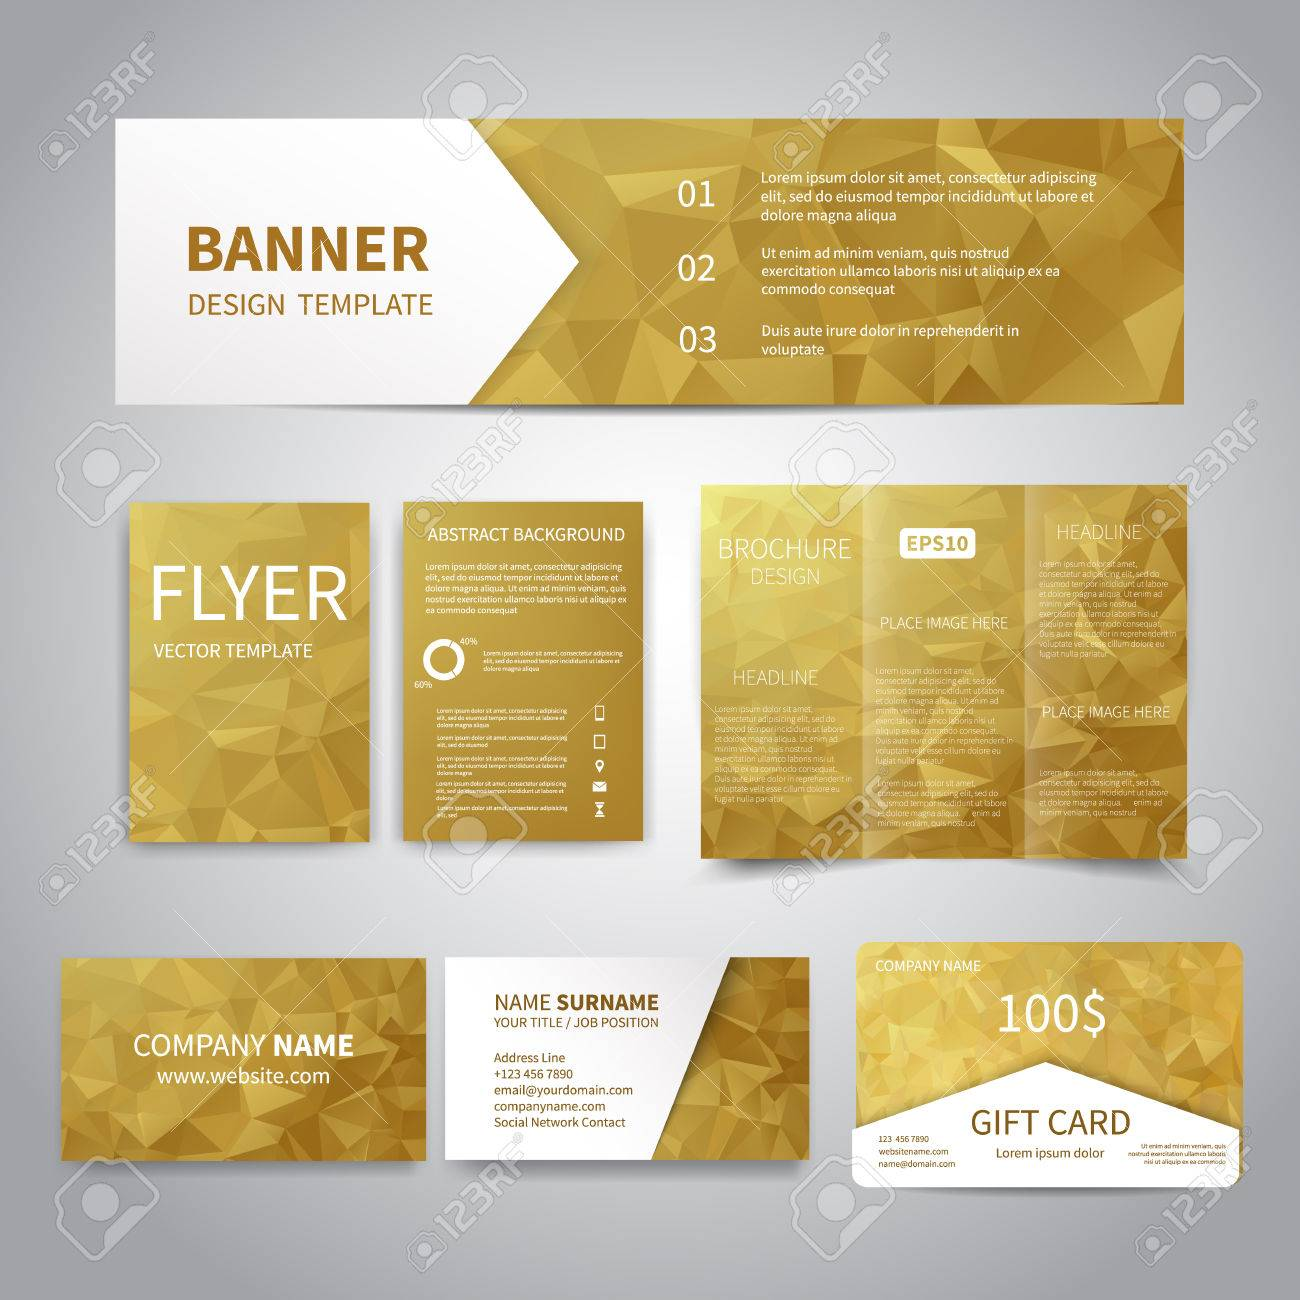 Banner flyers brochure business cards gift card design templates banner flyers brochure business cards gift card design templates set with geometric colourmoves